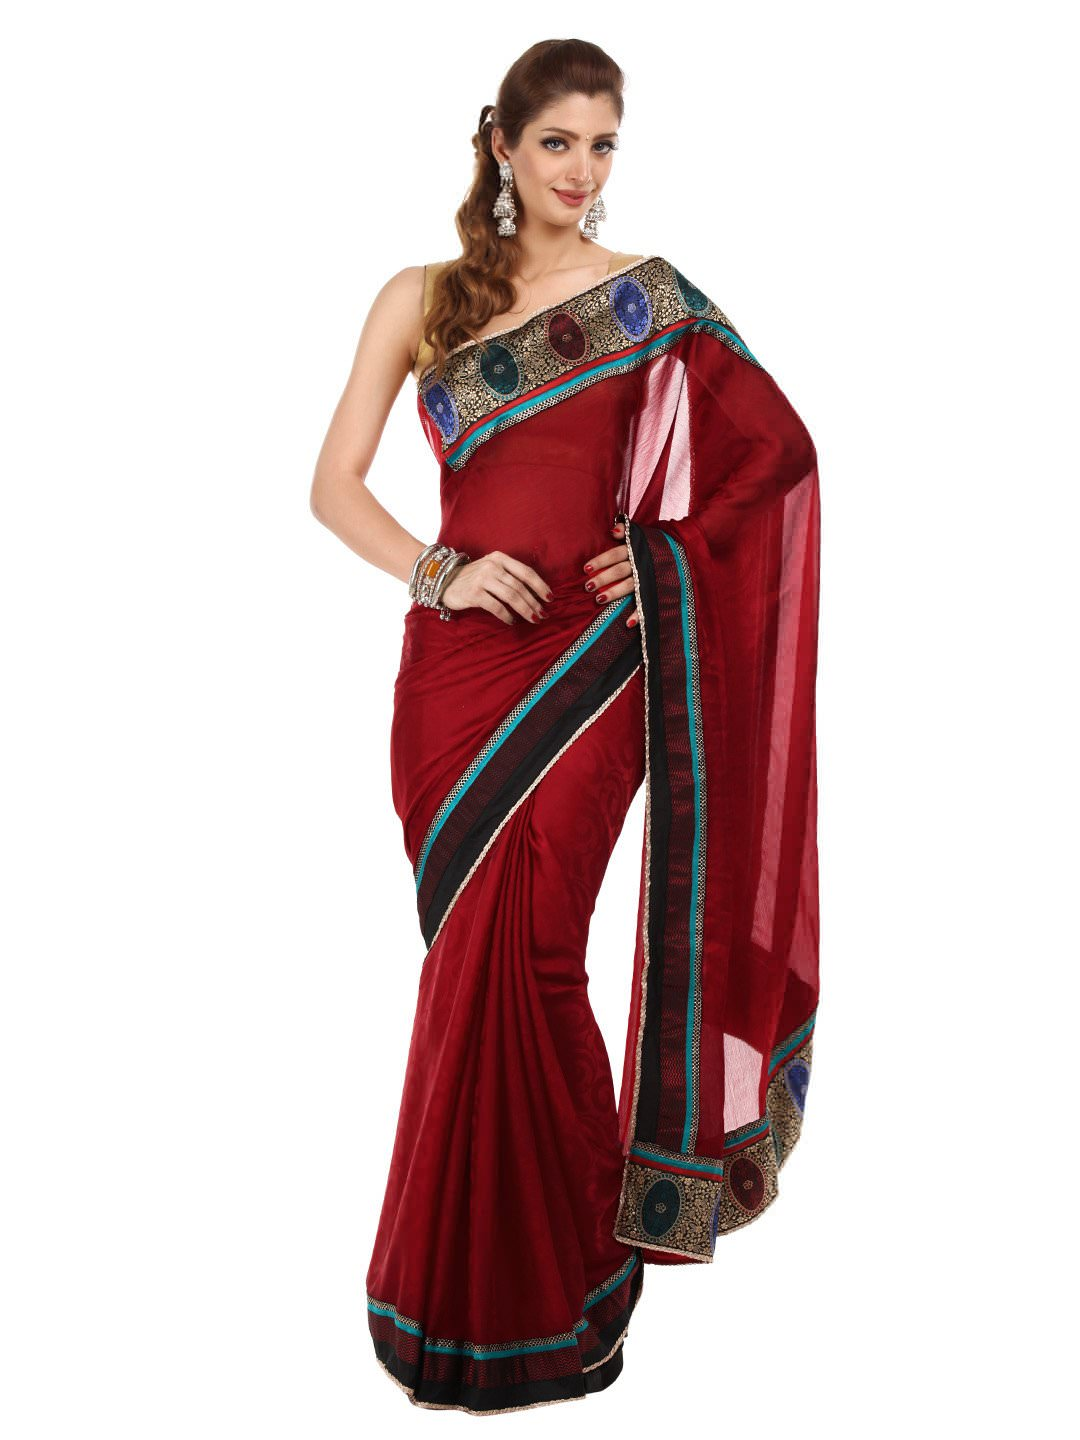 Indian style clothing for women